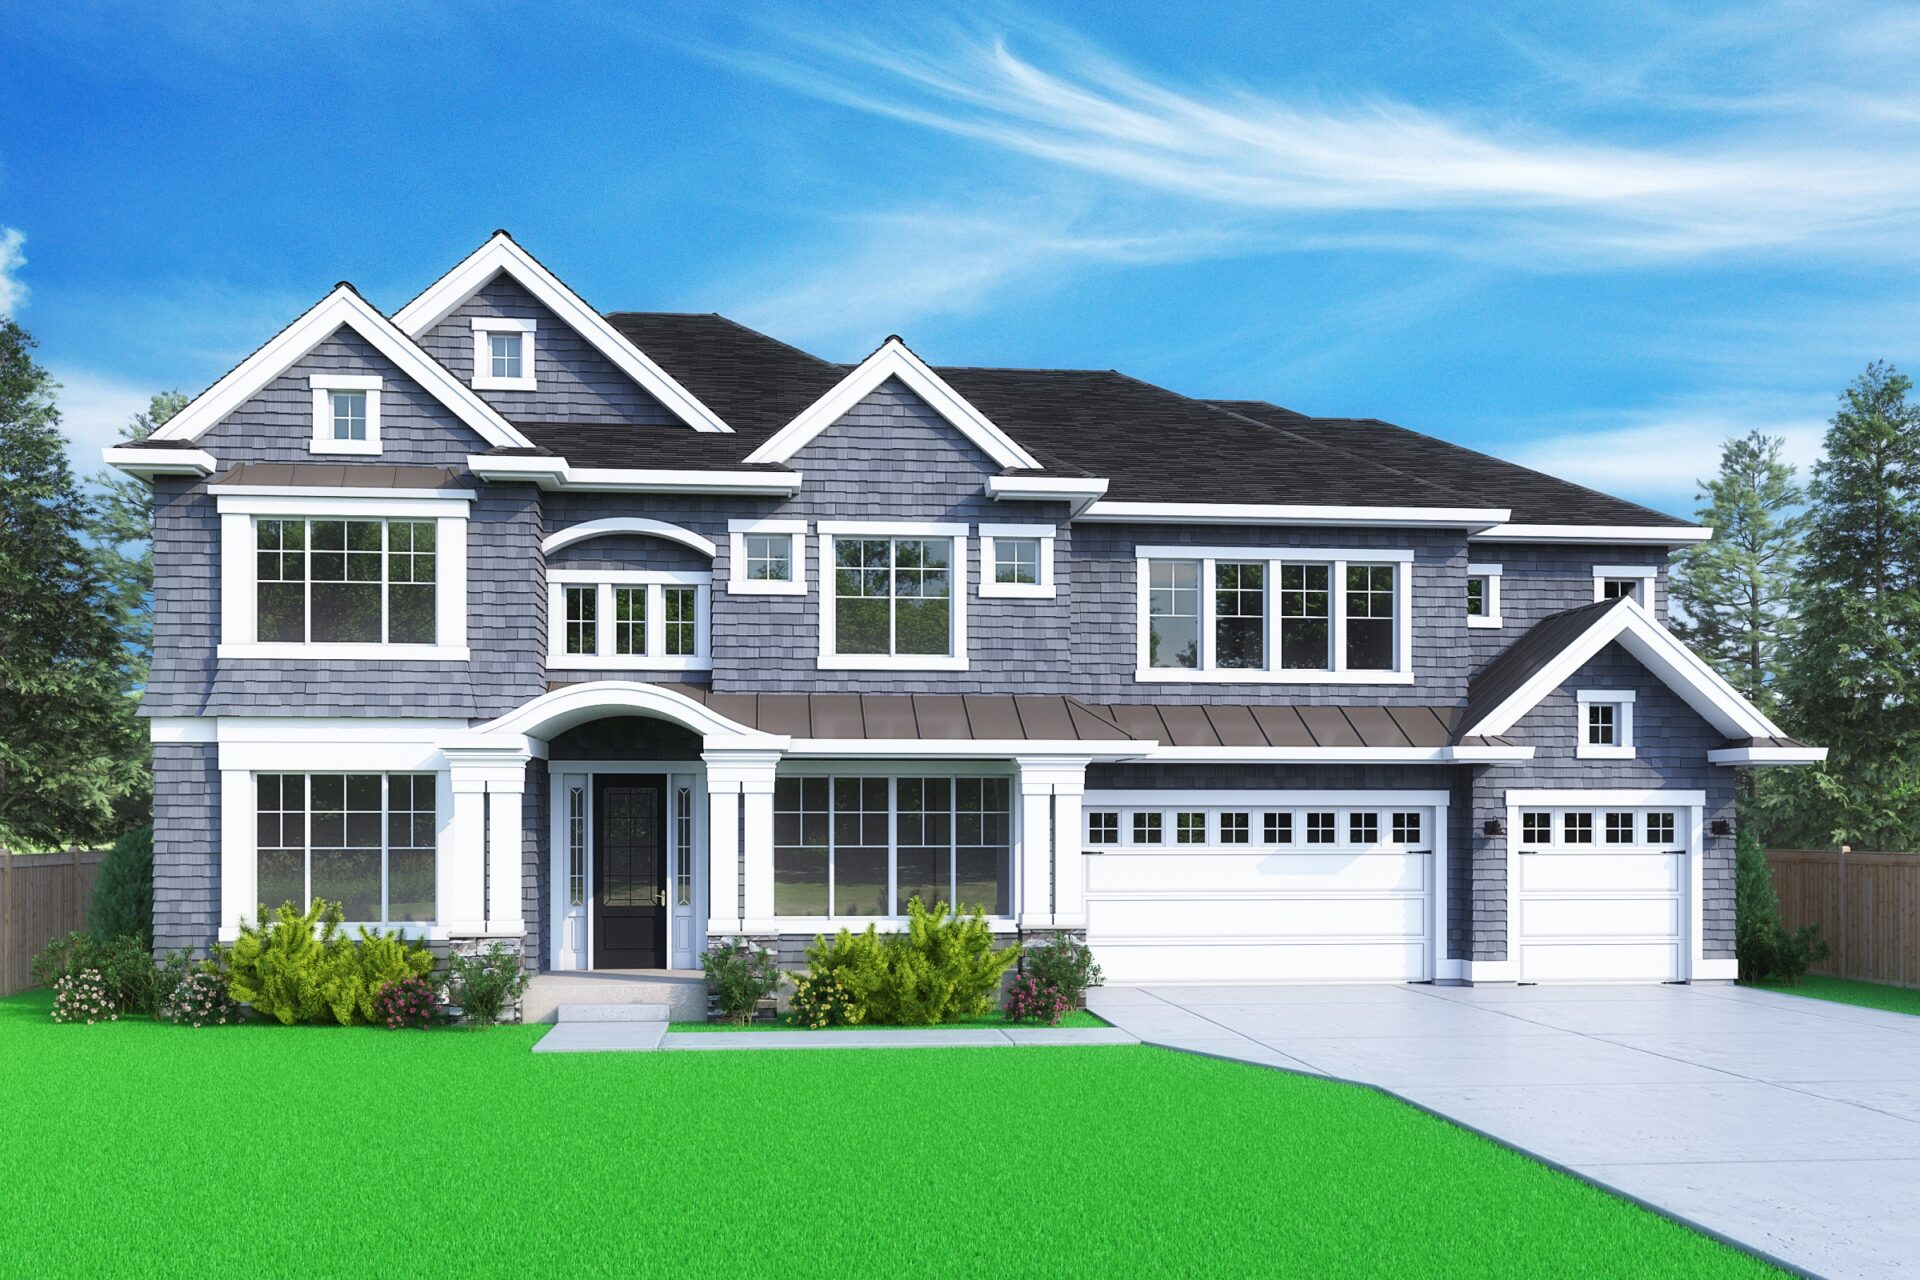 View our new luxury home construction on 2845 109th Ave SE, in Bellevue, WA from MN Custom Homes